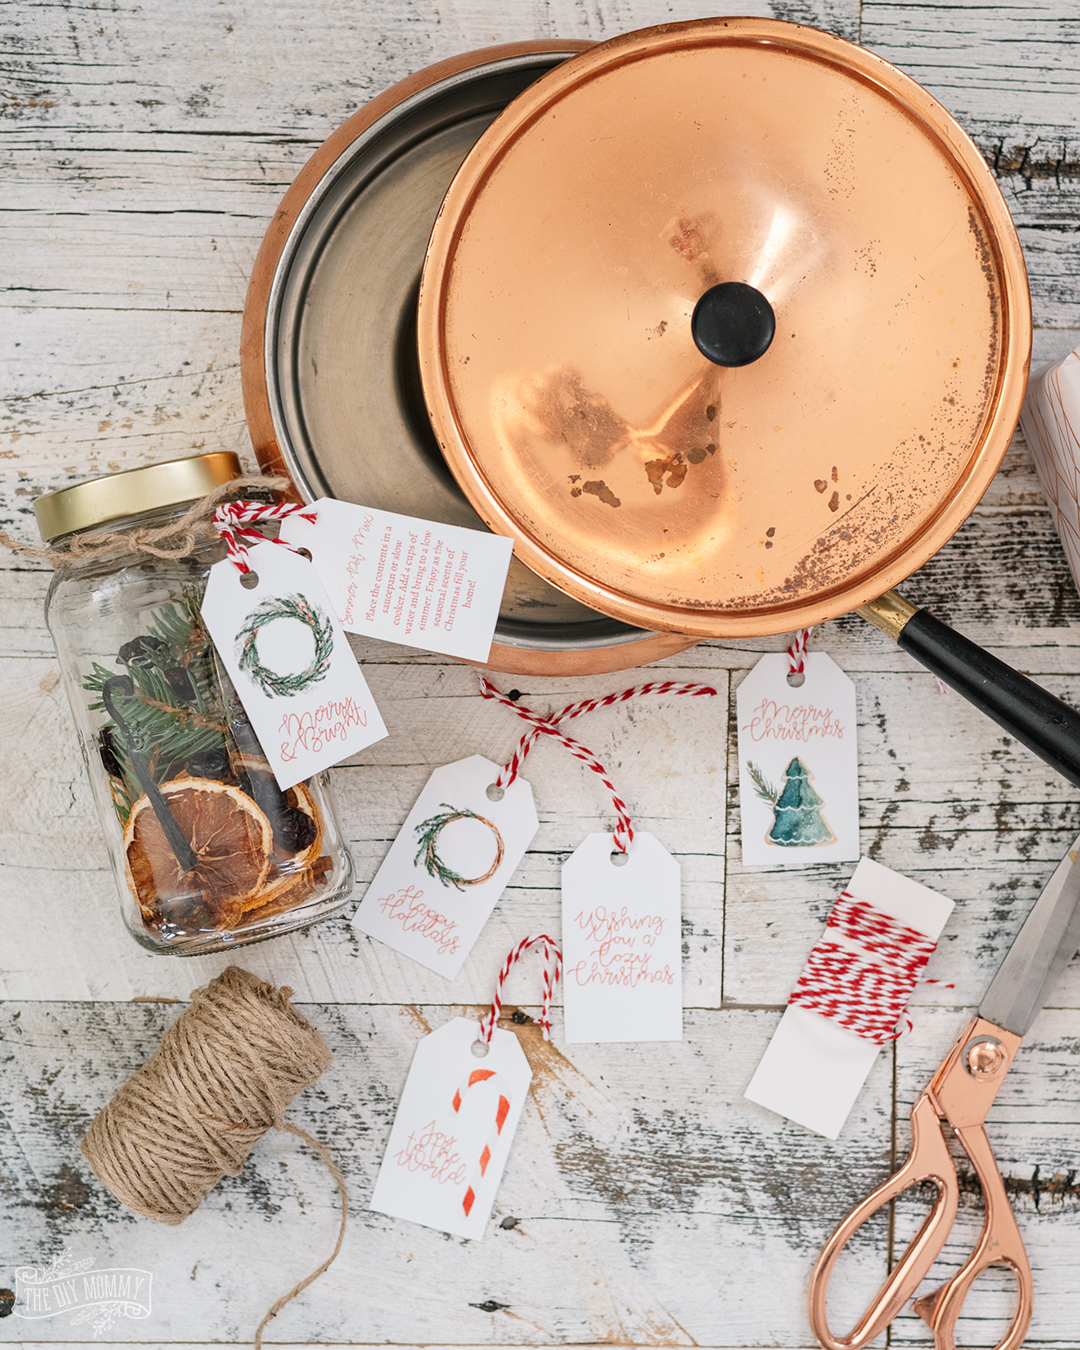 Easy and budget friendly simmer pot mix gift idea - simply add dried fruit, spices and greenery and some handmade tags!